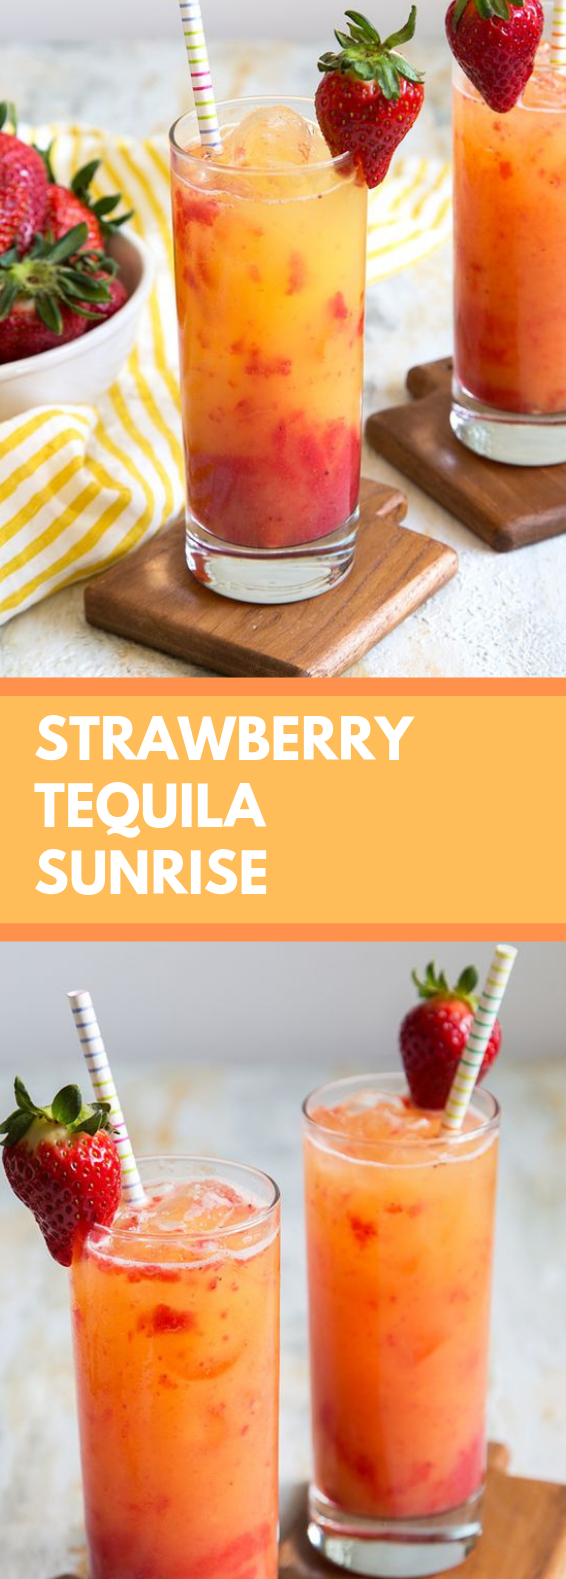 STRAWBERRY TEQUILA SUNRISE #drink #healthydrink #tequiladrinks